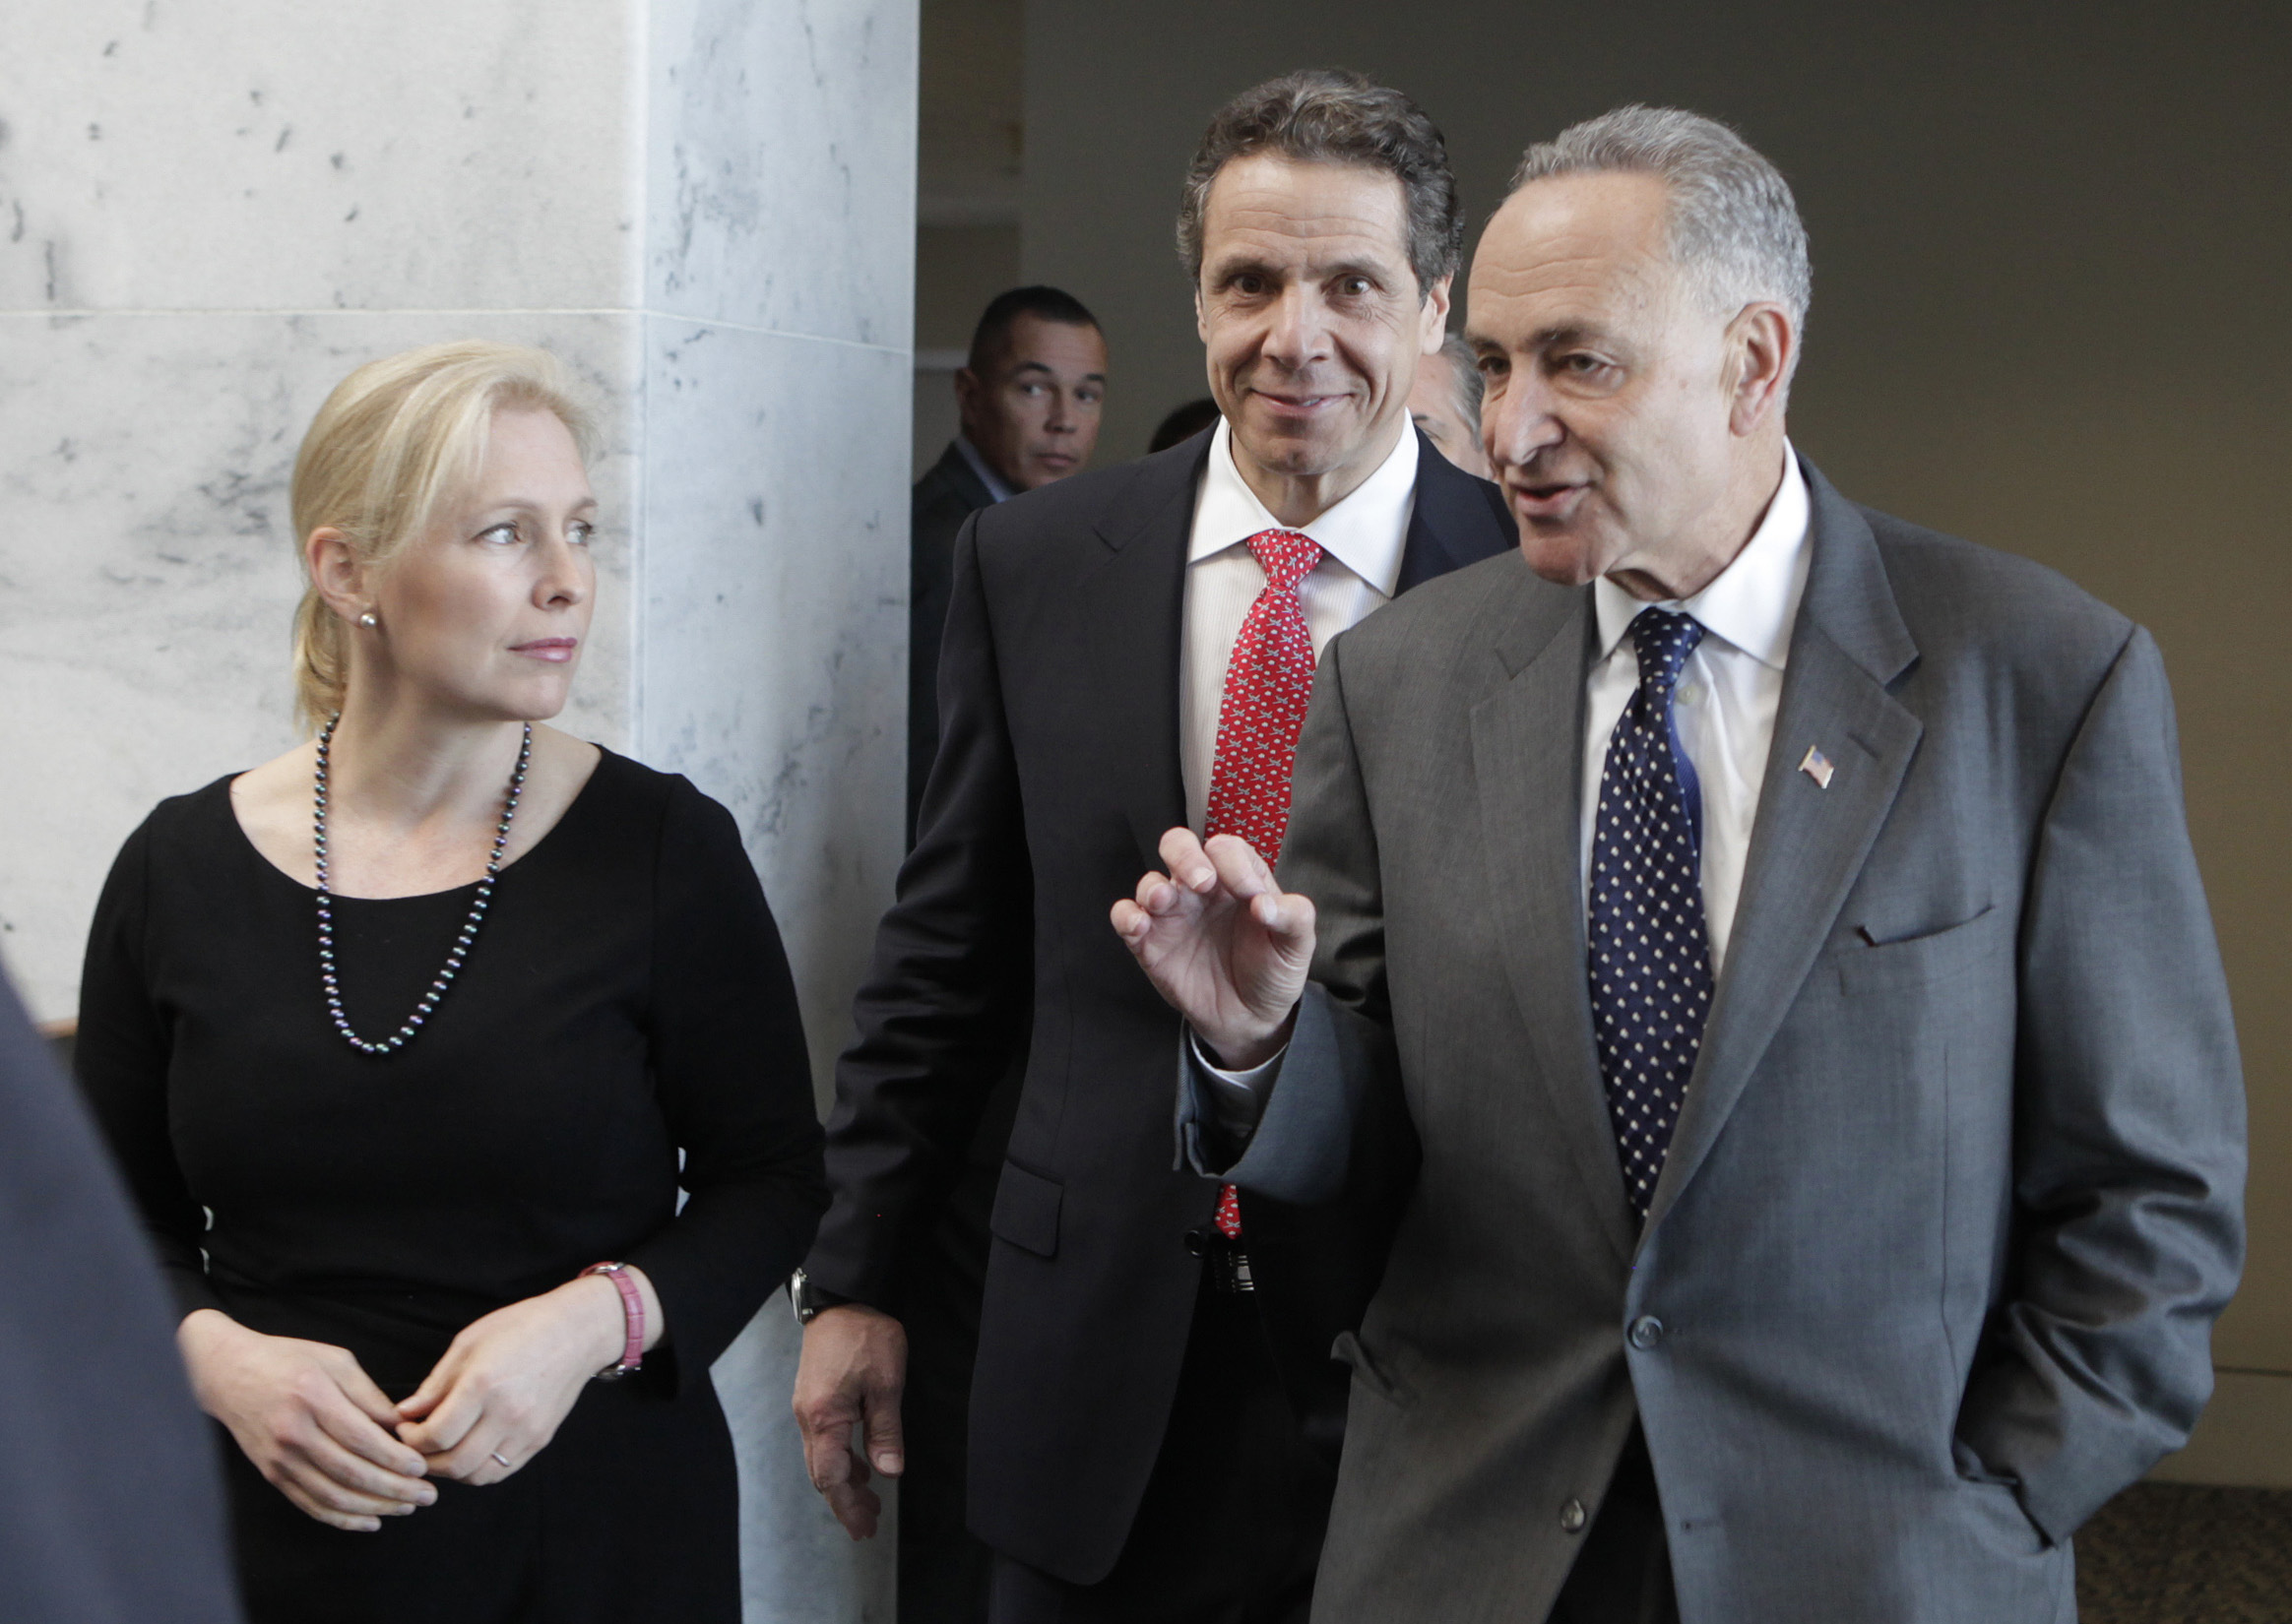 New York Governor Cuomo walks with Senators Schumer and Gillibrand in Washington